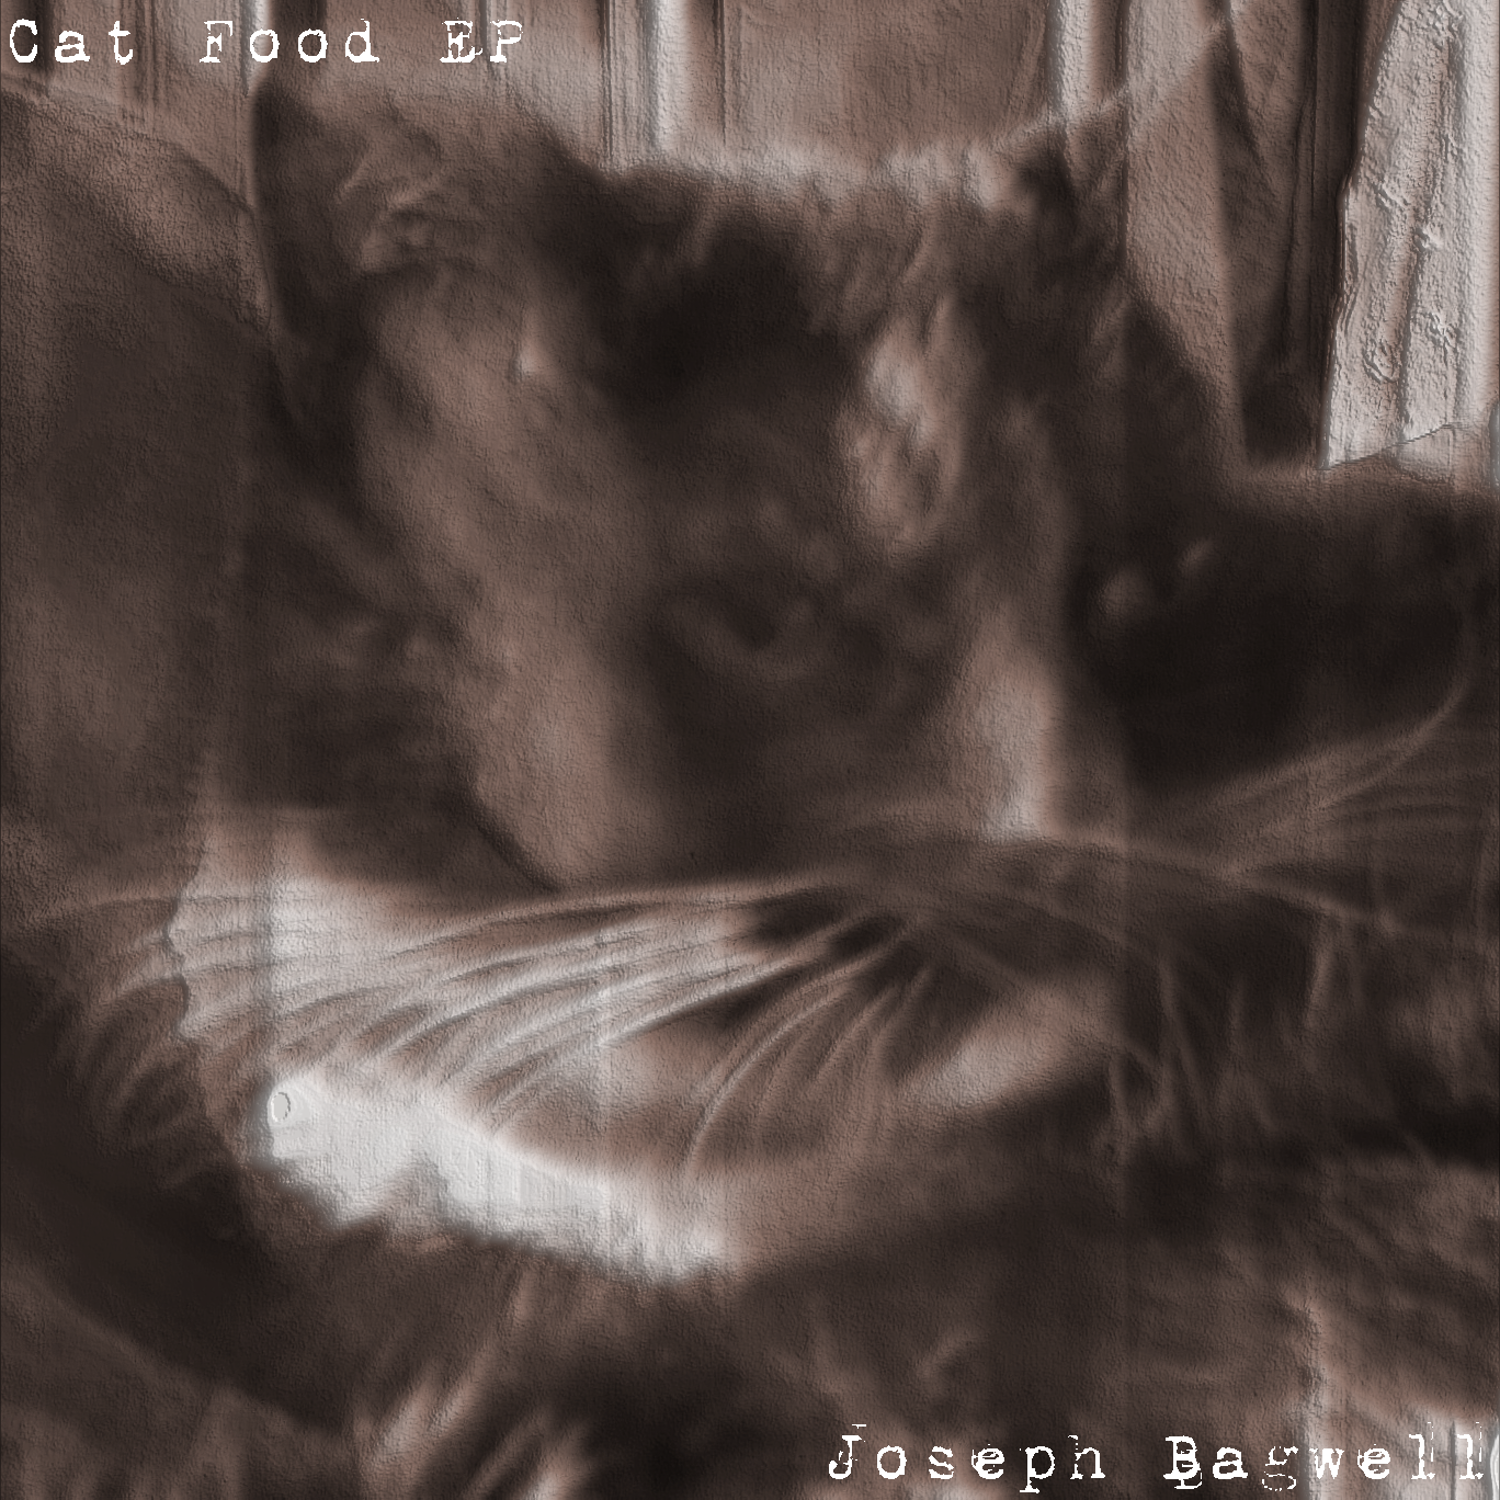 Cat Food EP Artwork bigger